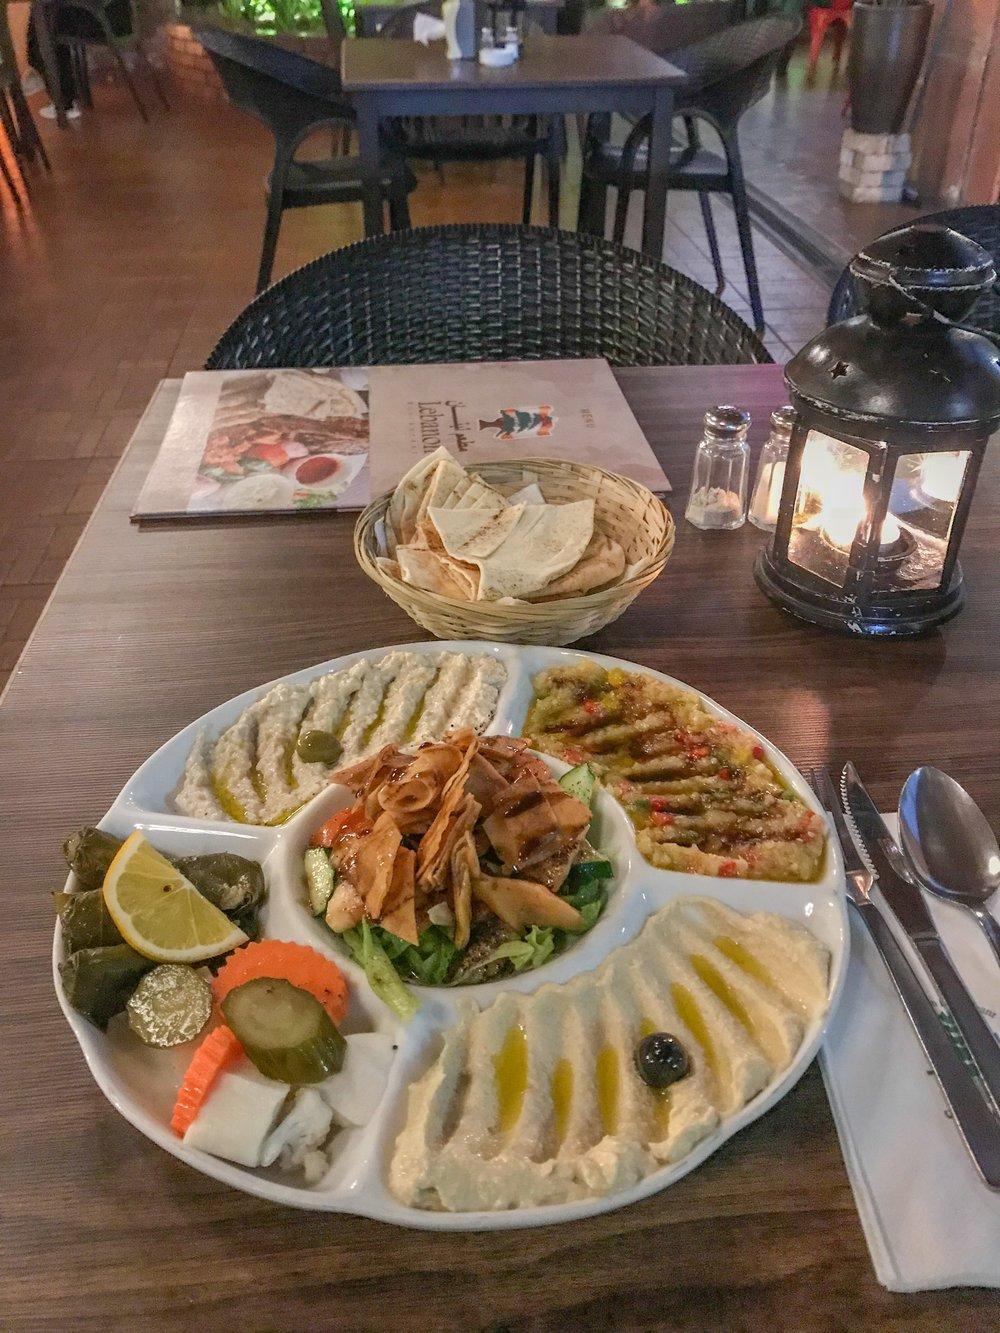 Arabic food is especially popular in Batu Ferringhi